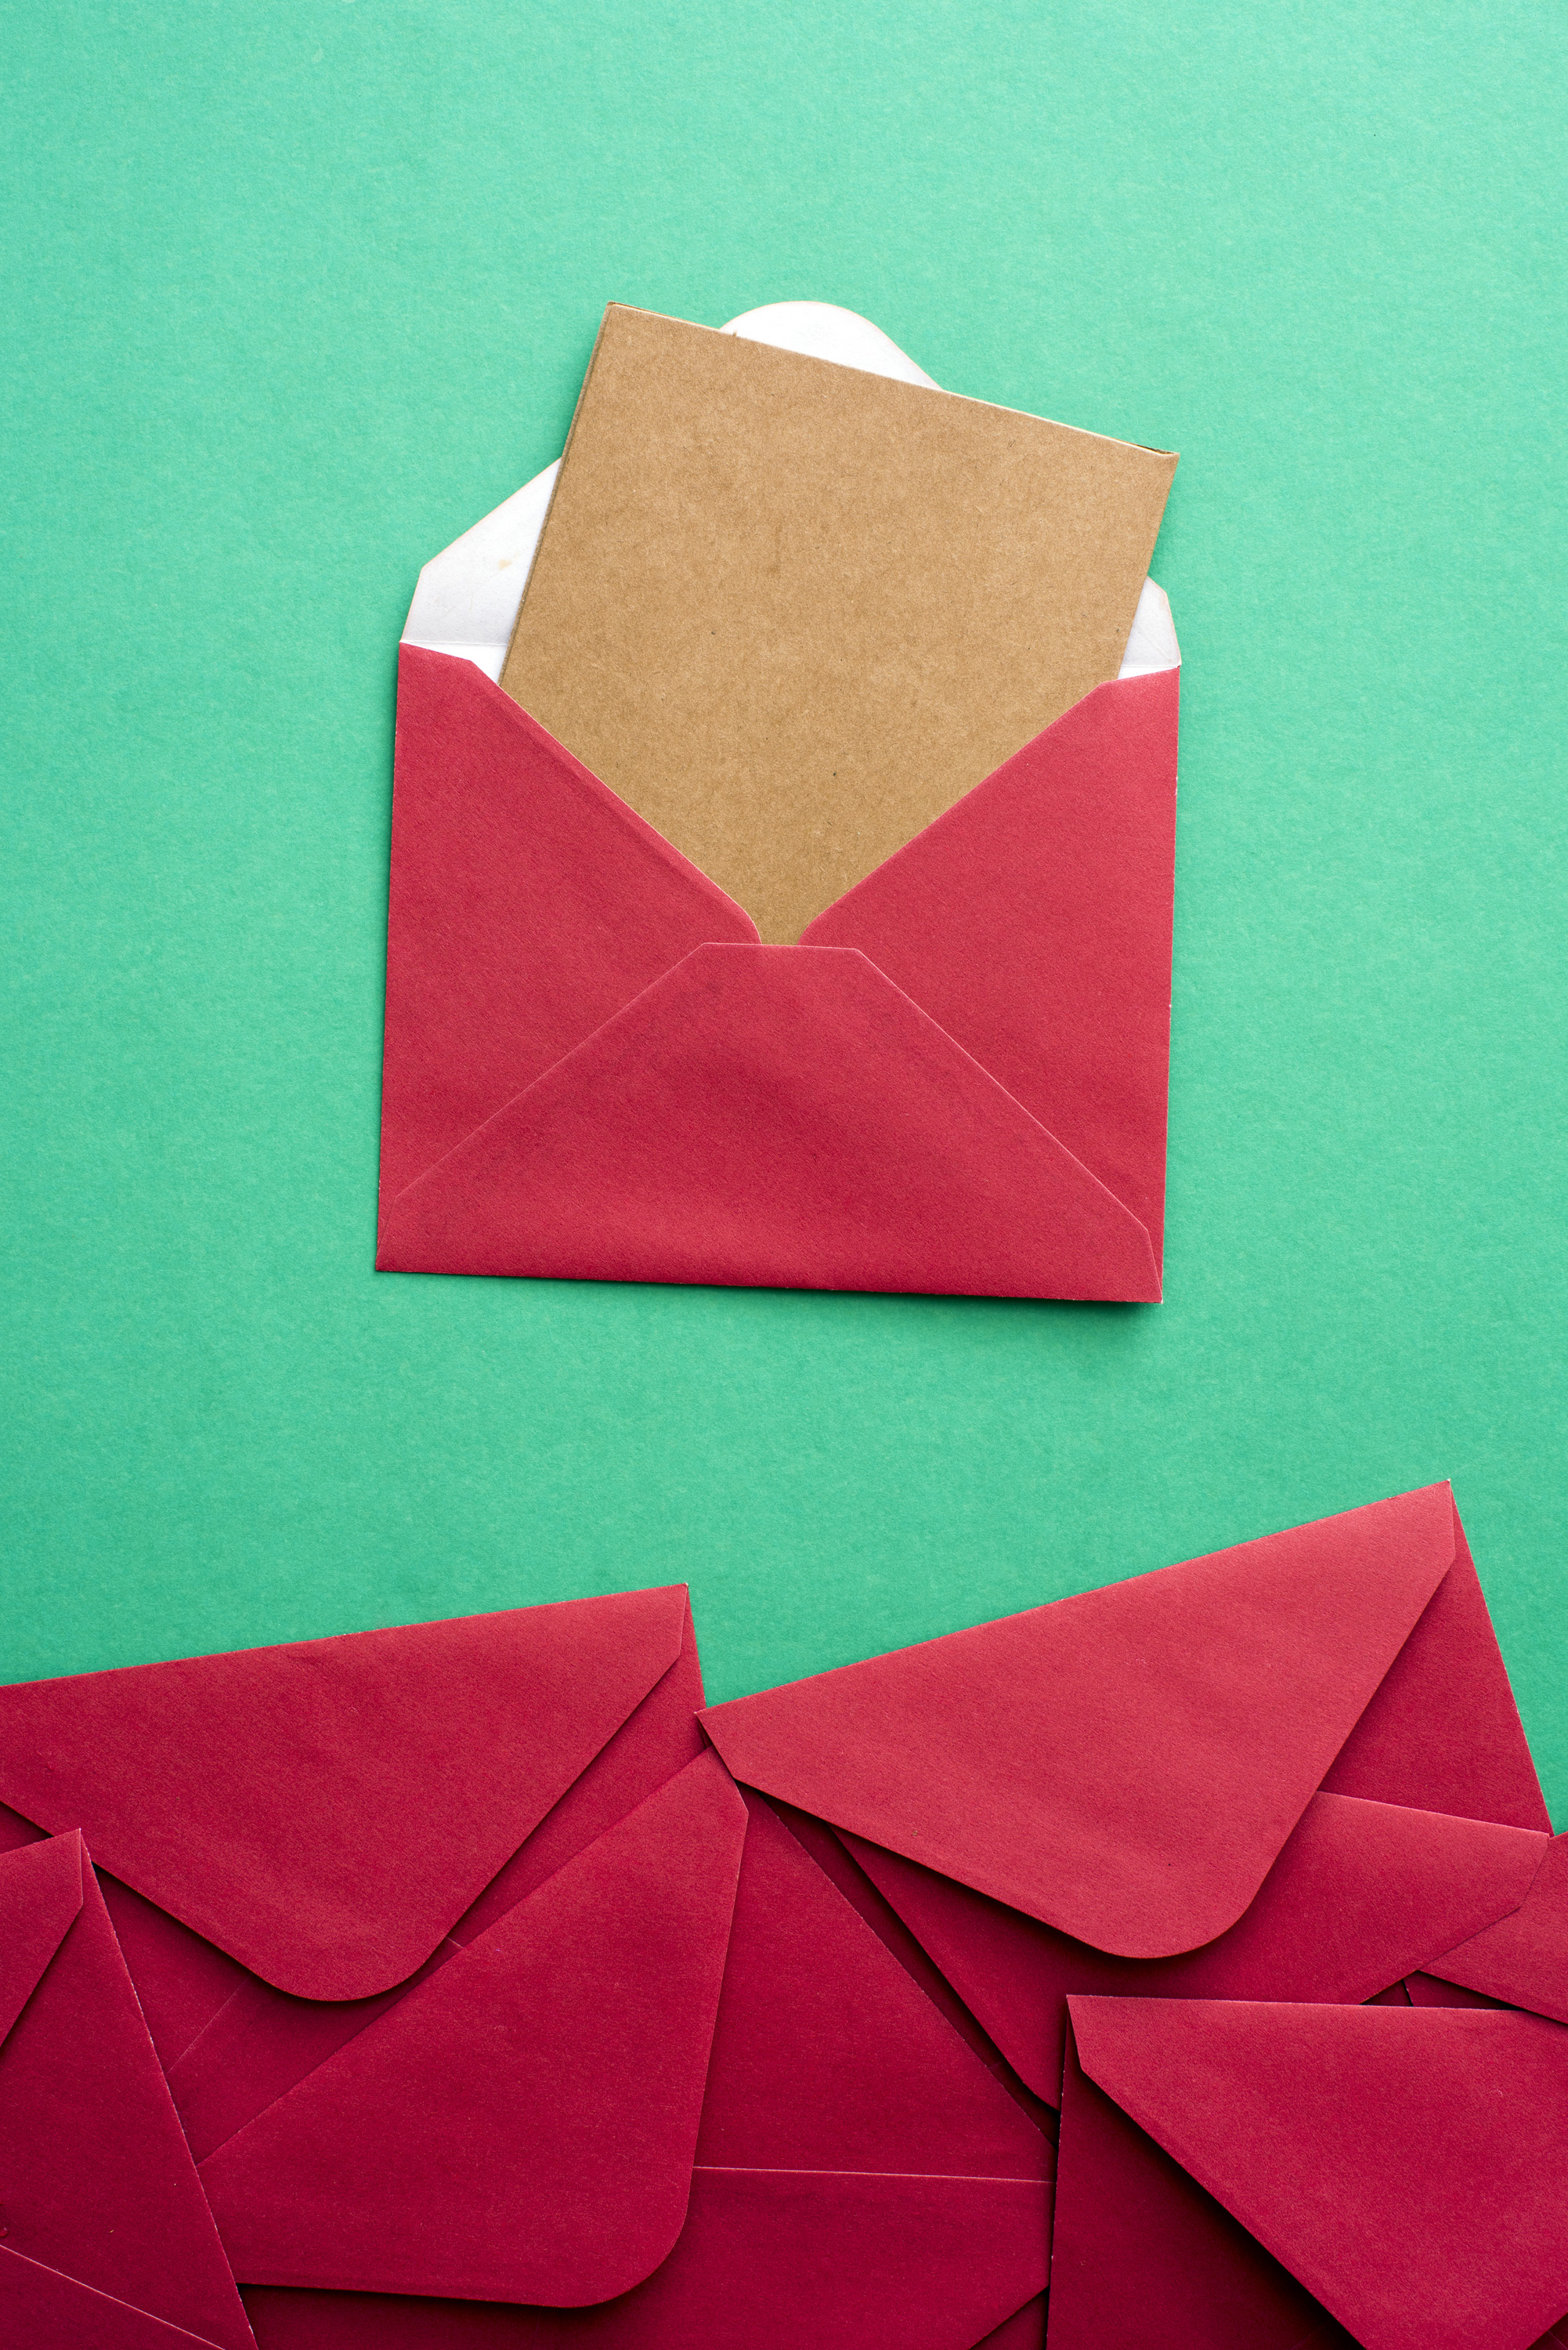 Blank card in festive red Christmas envelope protruding from the open flap with a bottom border of additional stationery over green with copy space for your seasonal greeting